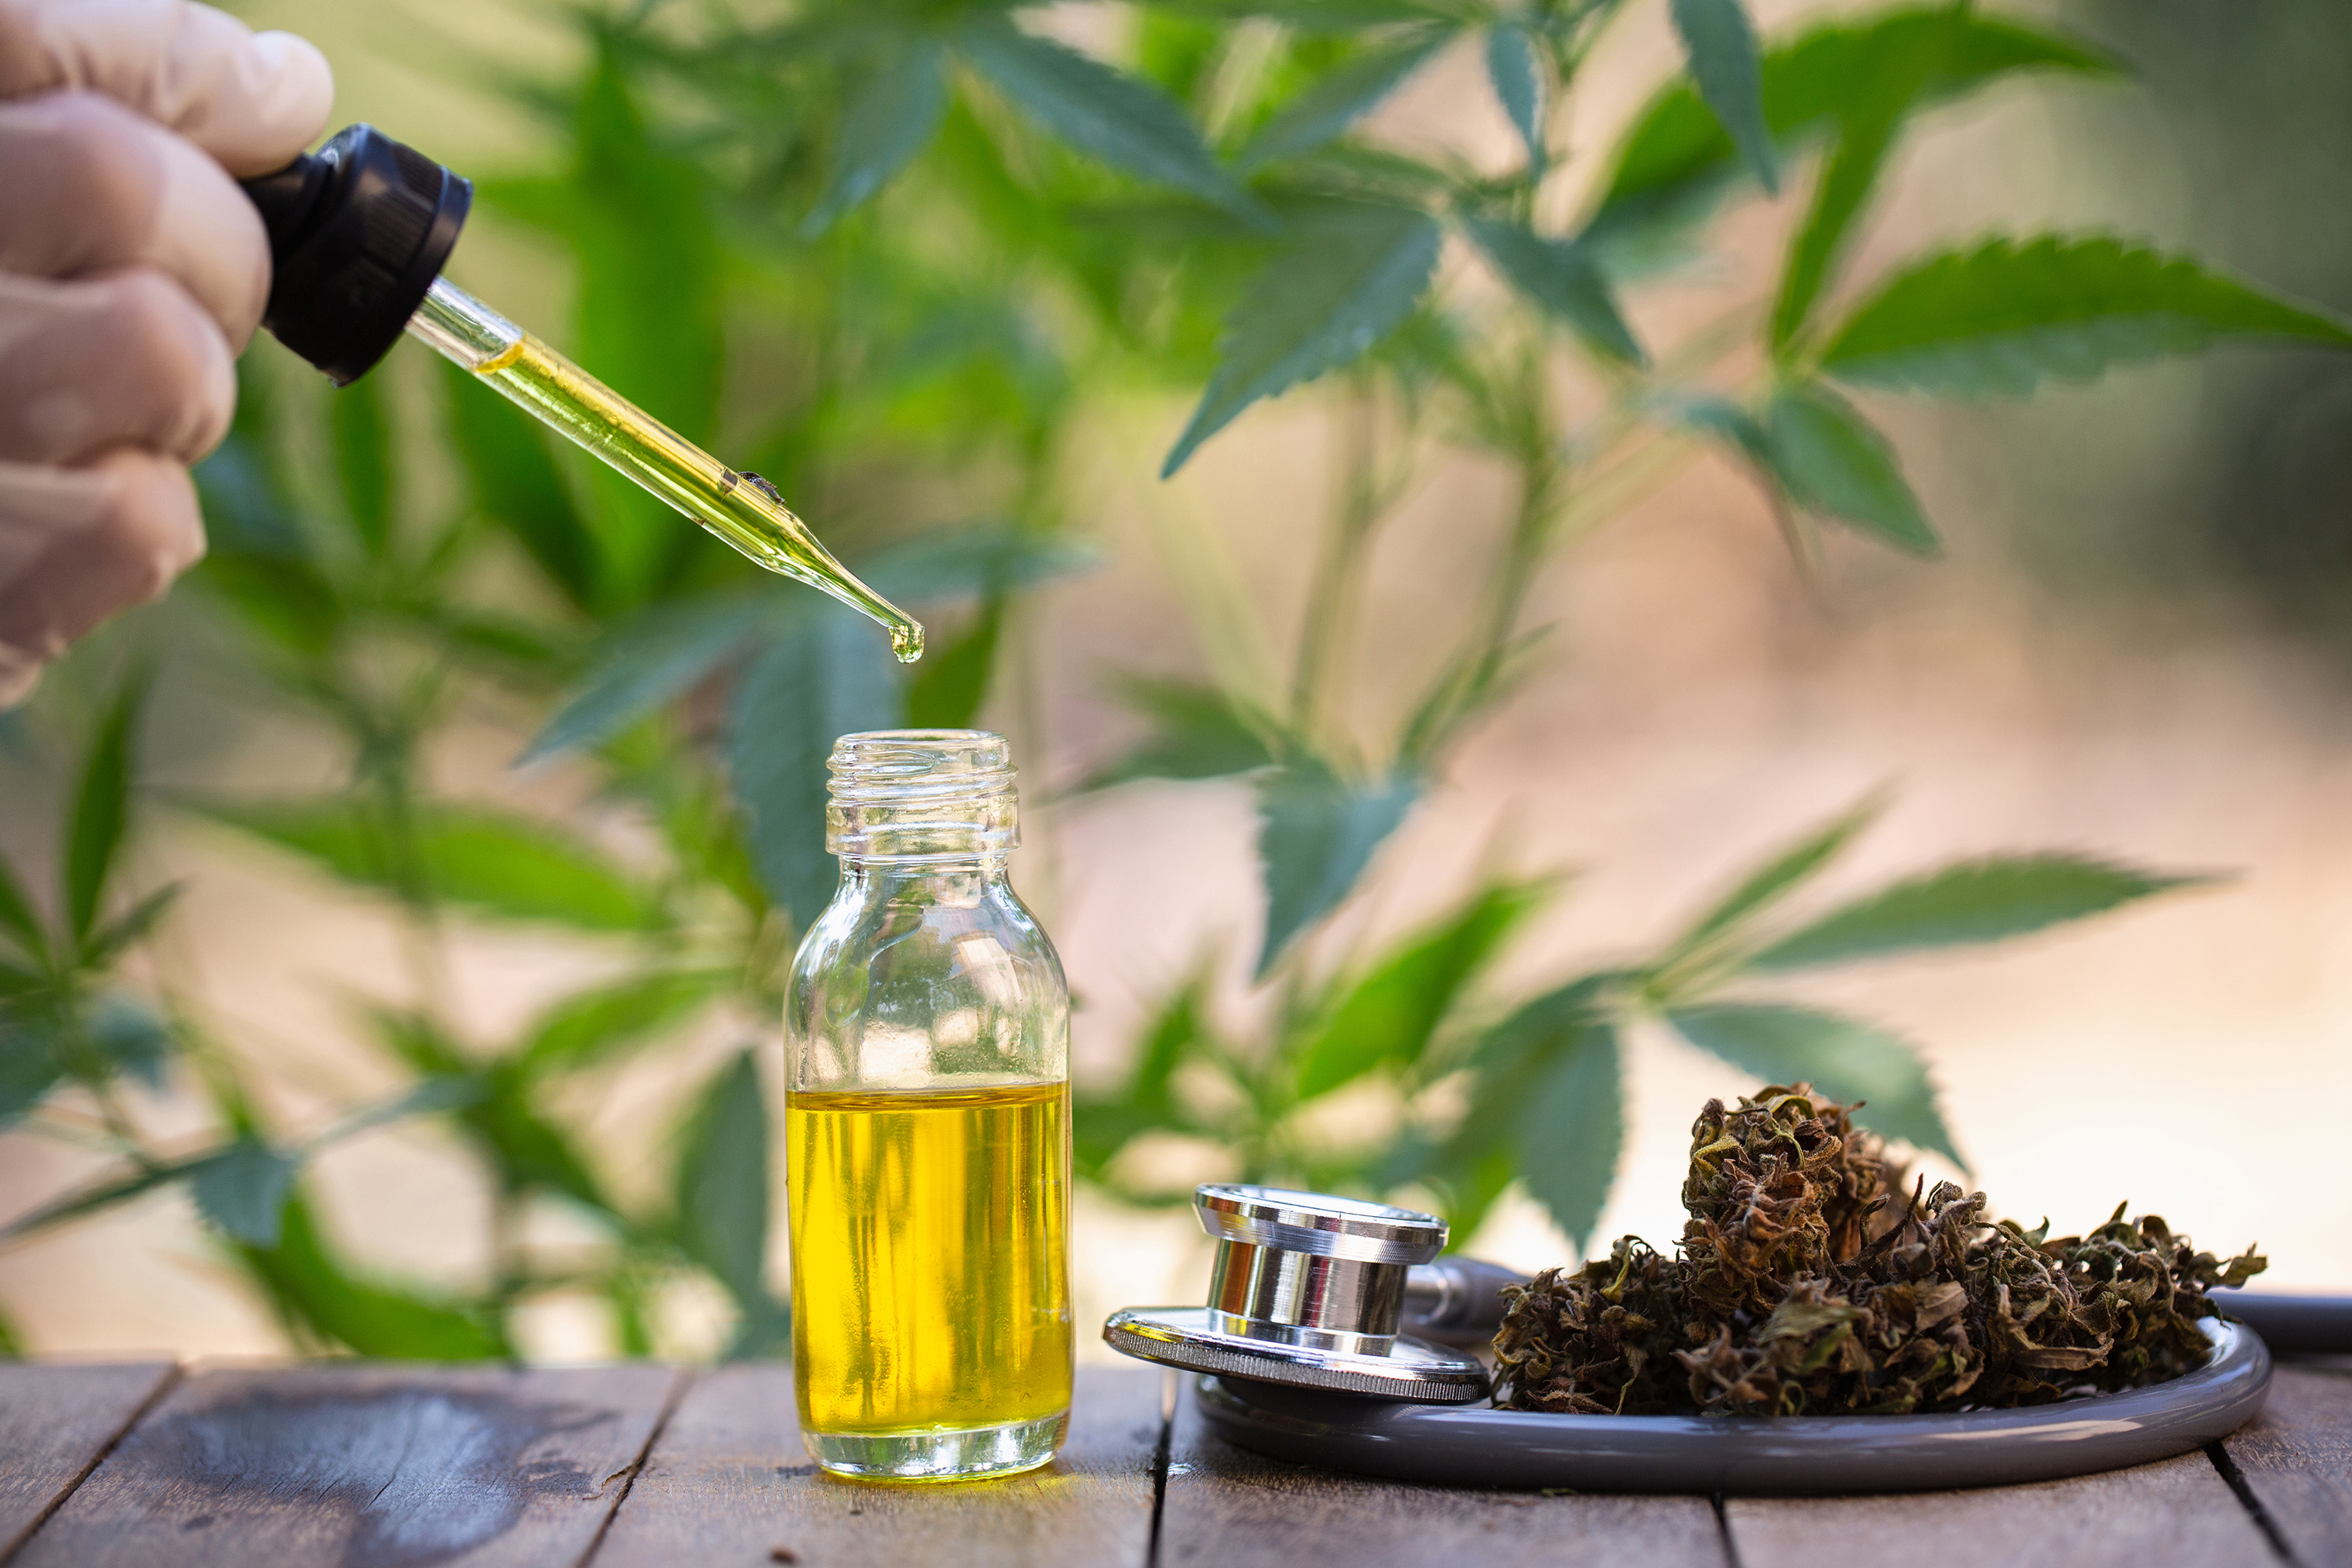 3 of Best CBD Oil companies to Purchase From